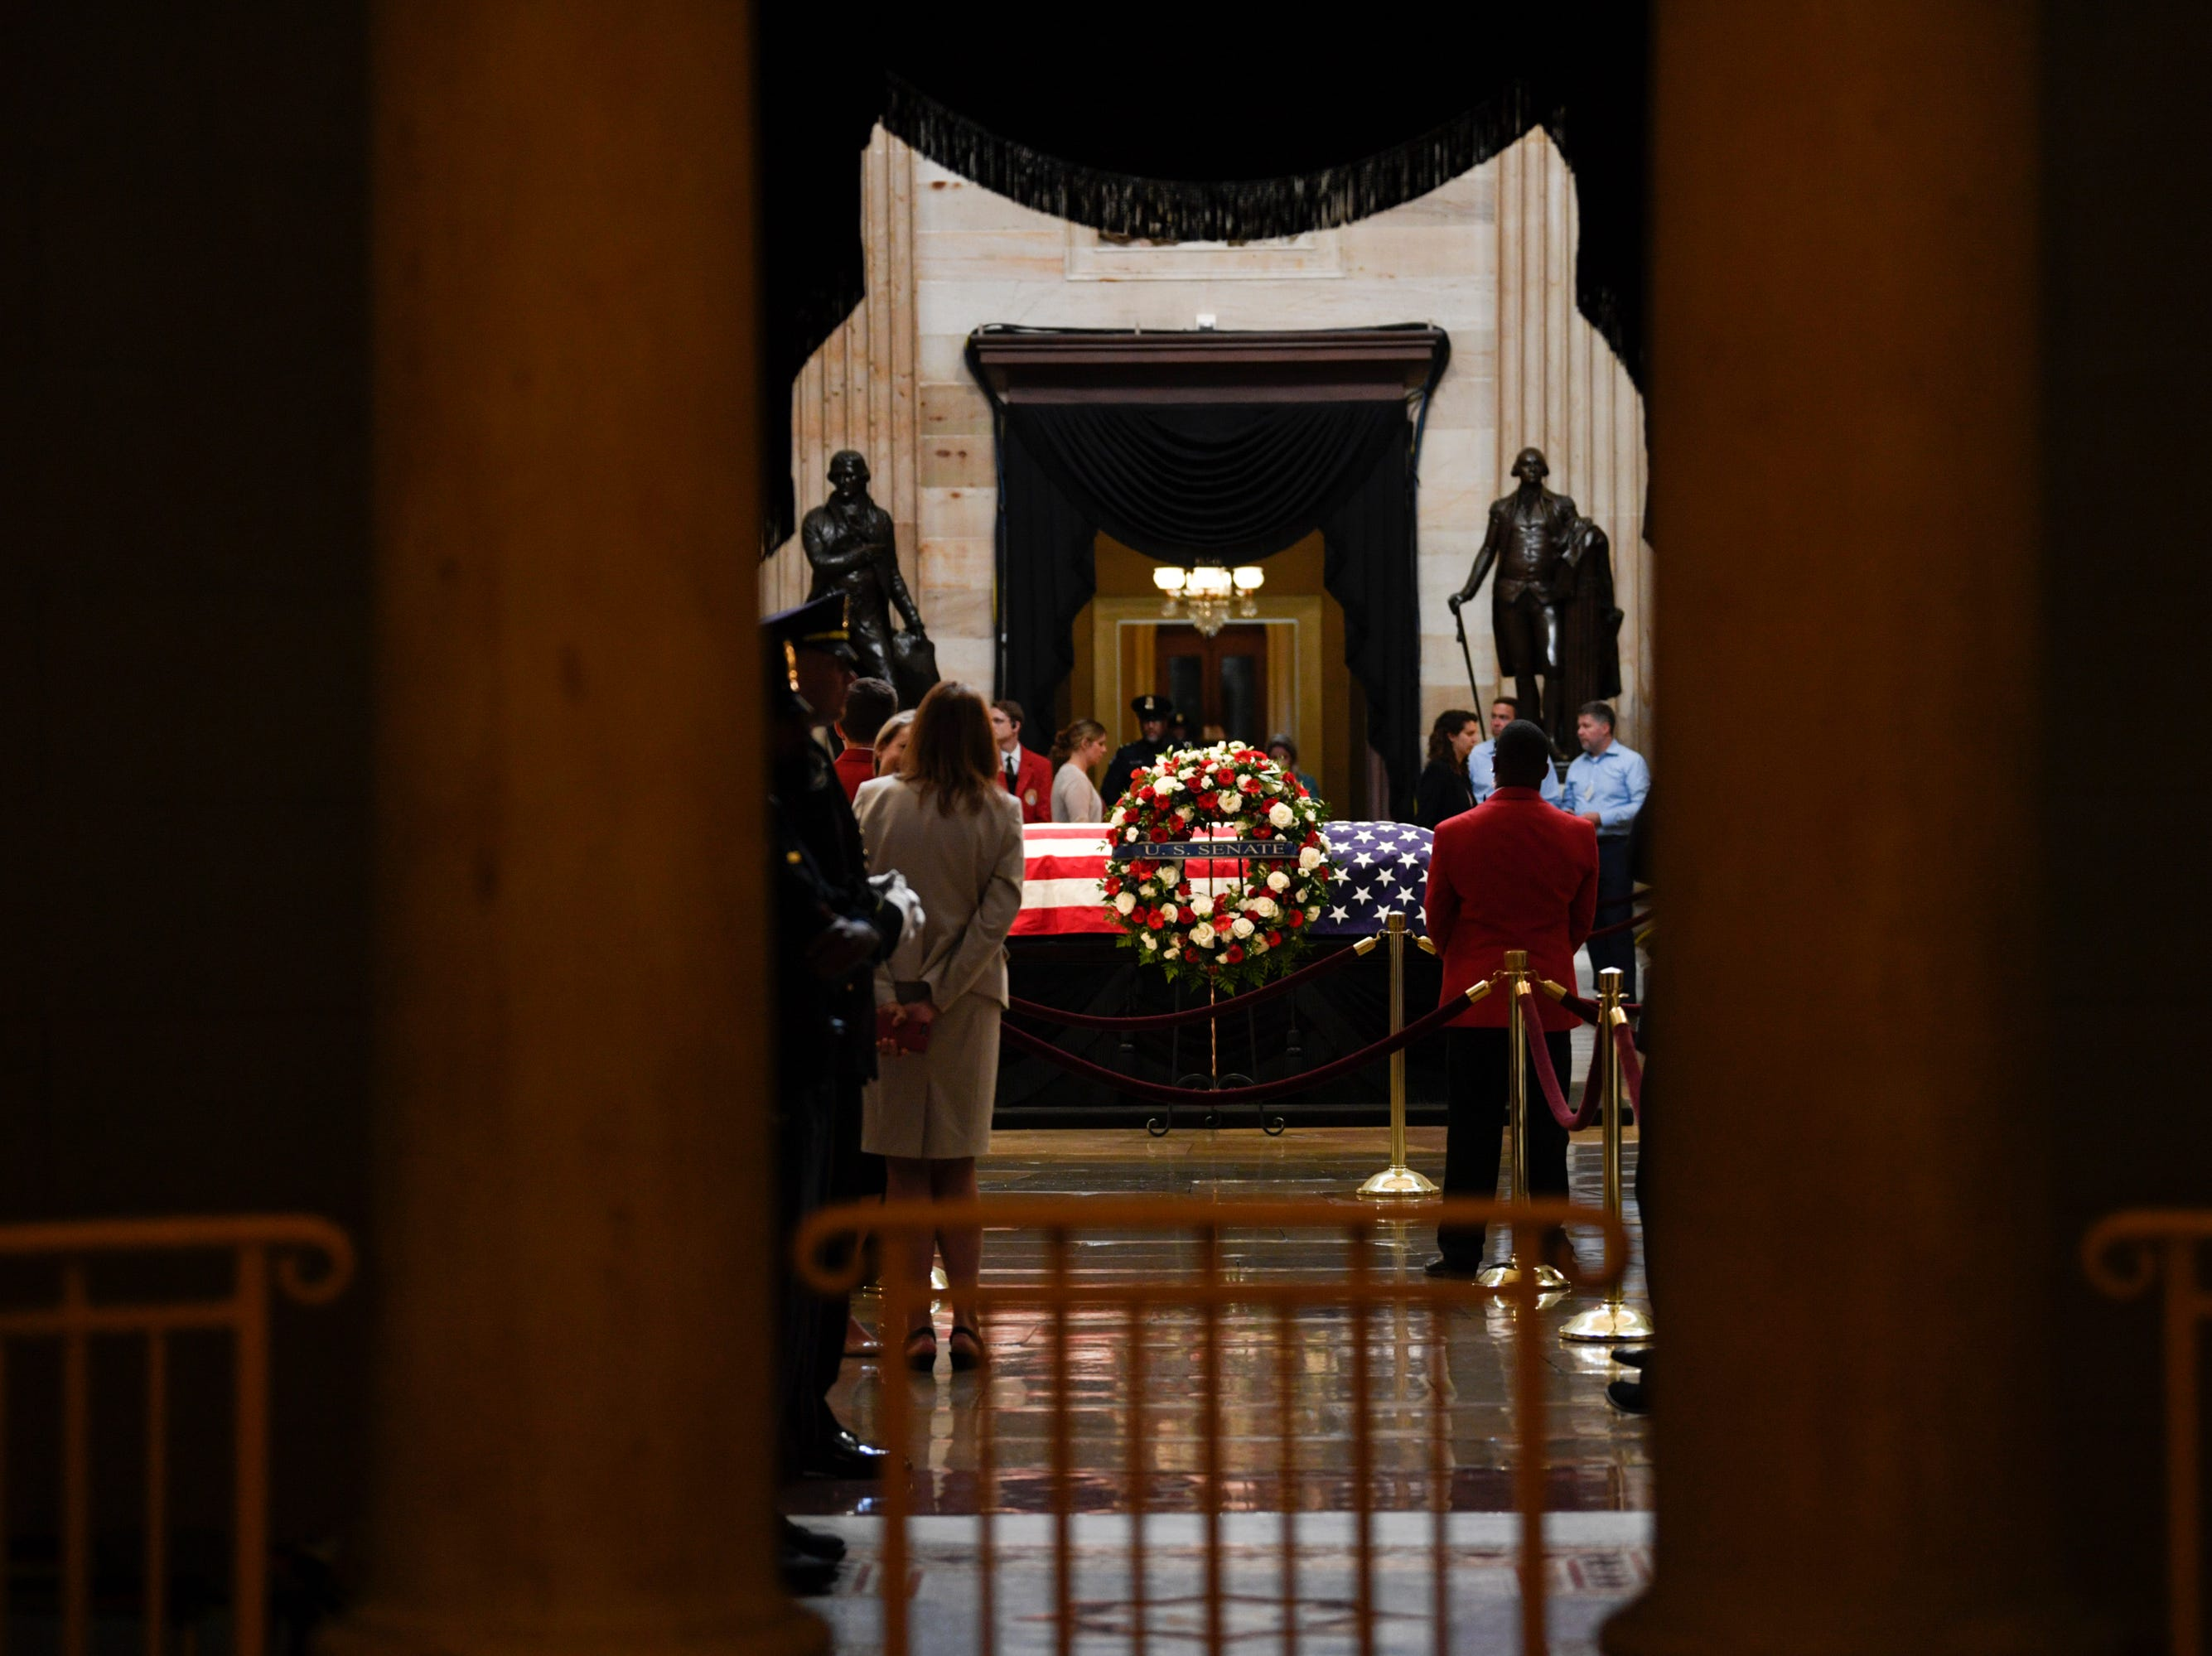 8/31/18 1:07:31 PM -- Washington, DC, U.S.A  -- The body of John McCain lies in state at the U.S. Capitol in Washington on Aug. 31, 2018 in Washington. Sen. McCain died on Aug. 25. --    Photo by Jasper Colt, USA TODAY Staff